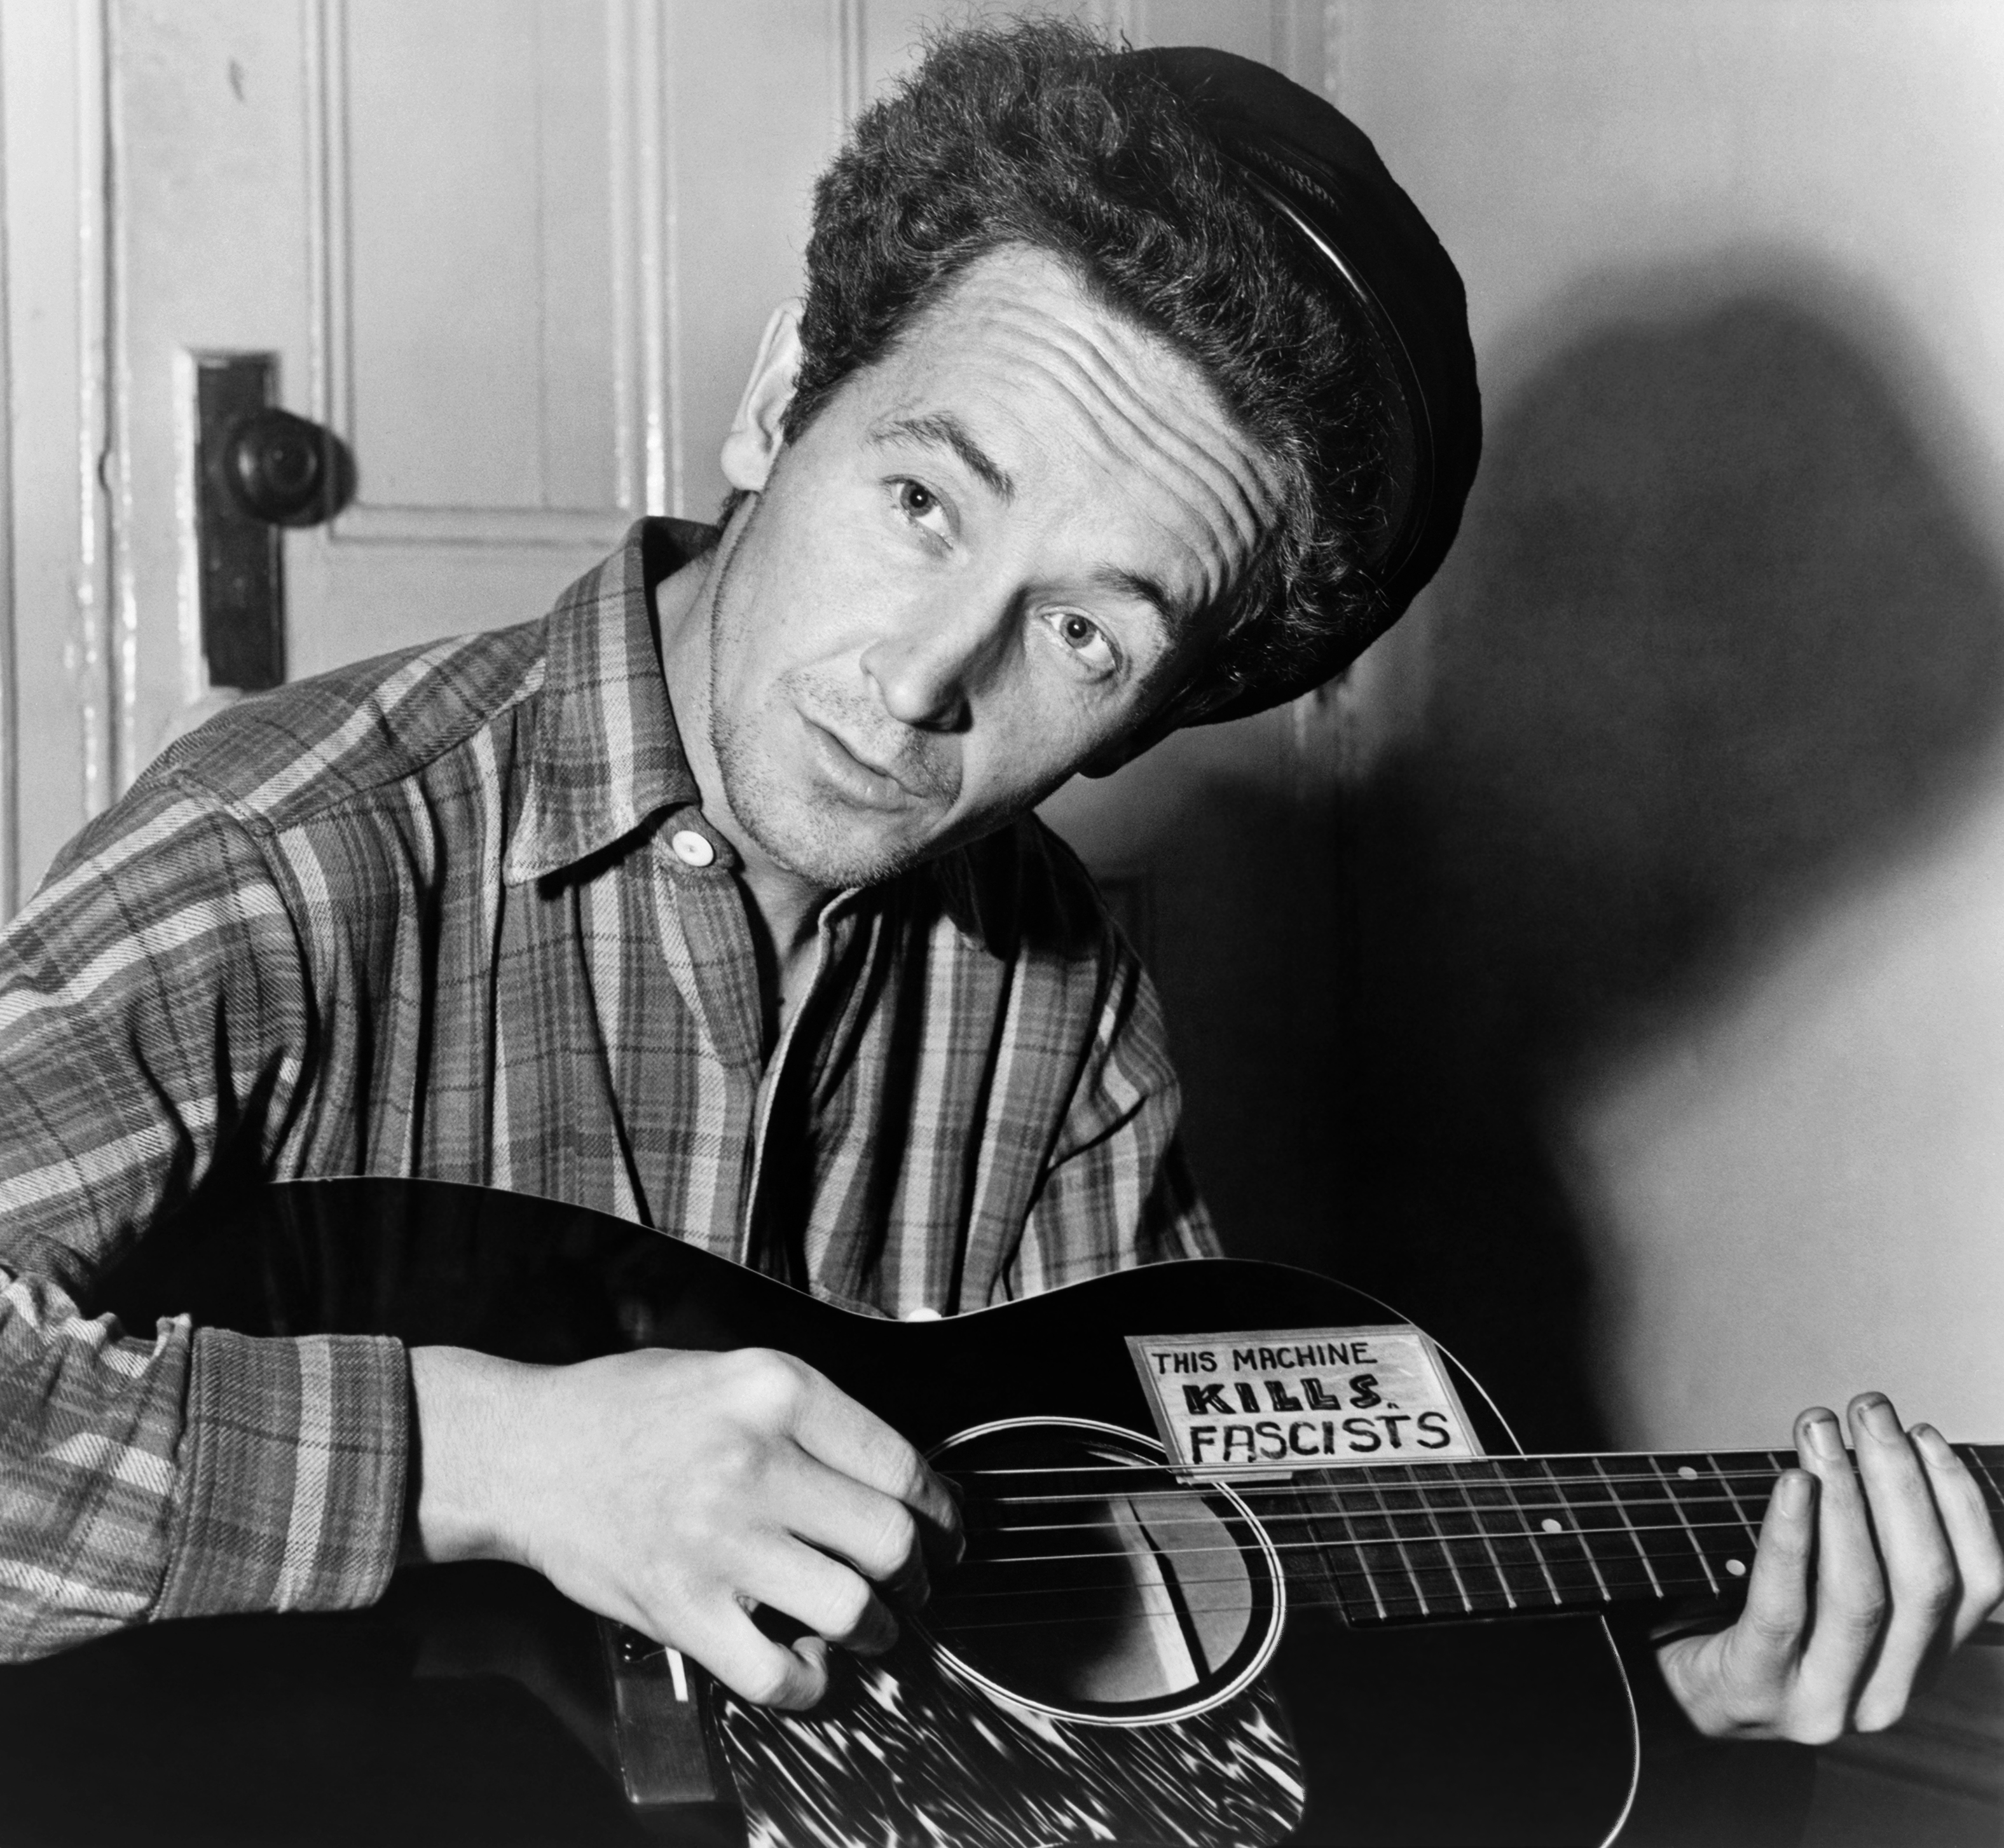 Woody Guthrie, no lover of fascists